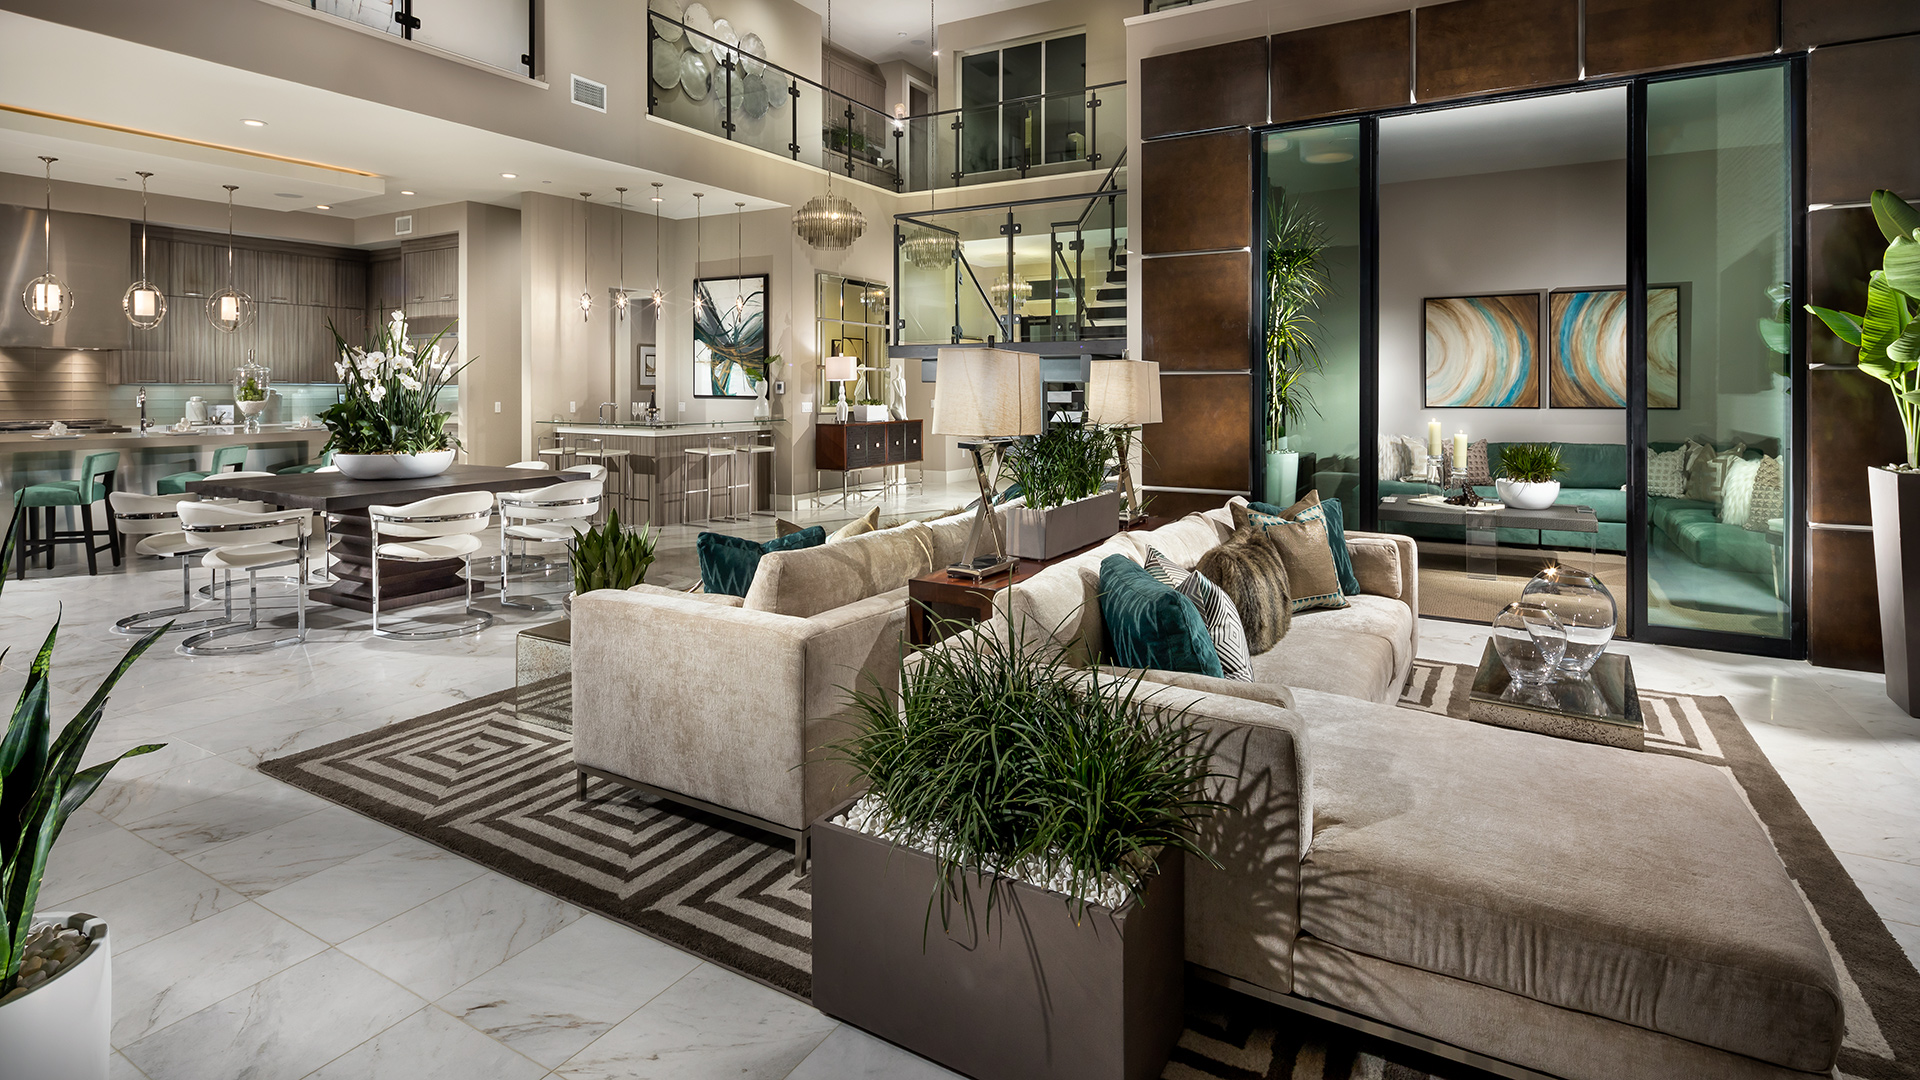 Great room with views to the luxury outdoor living space on Outdoor Living Space Builders Near Me  id=54514